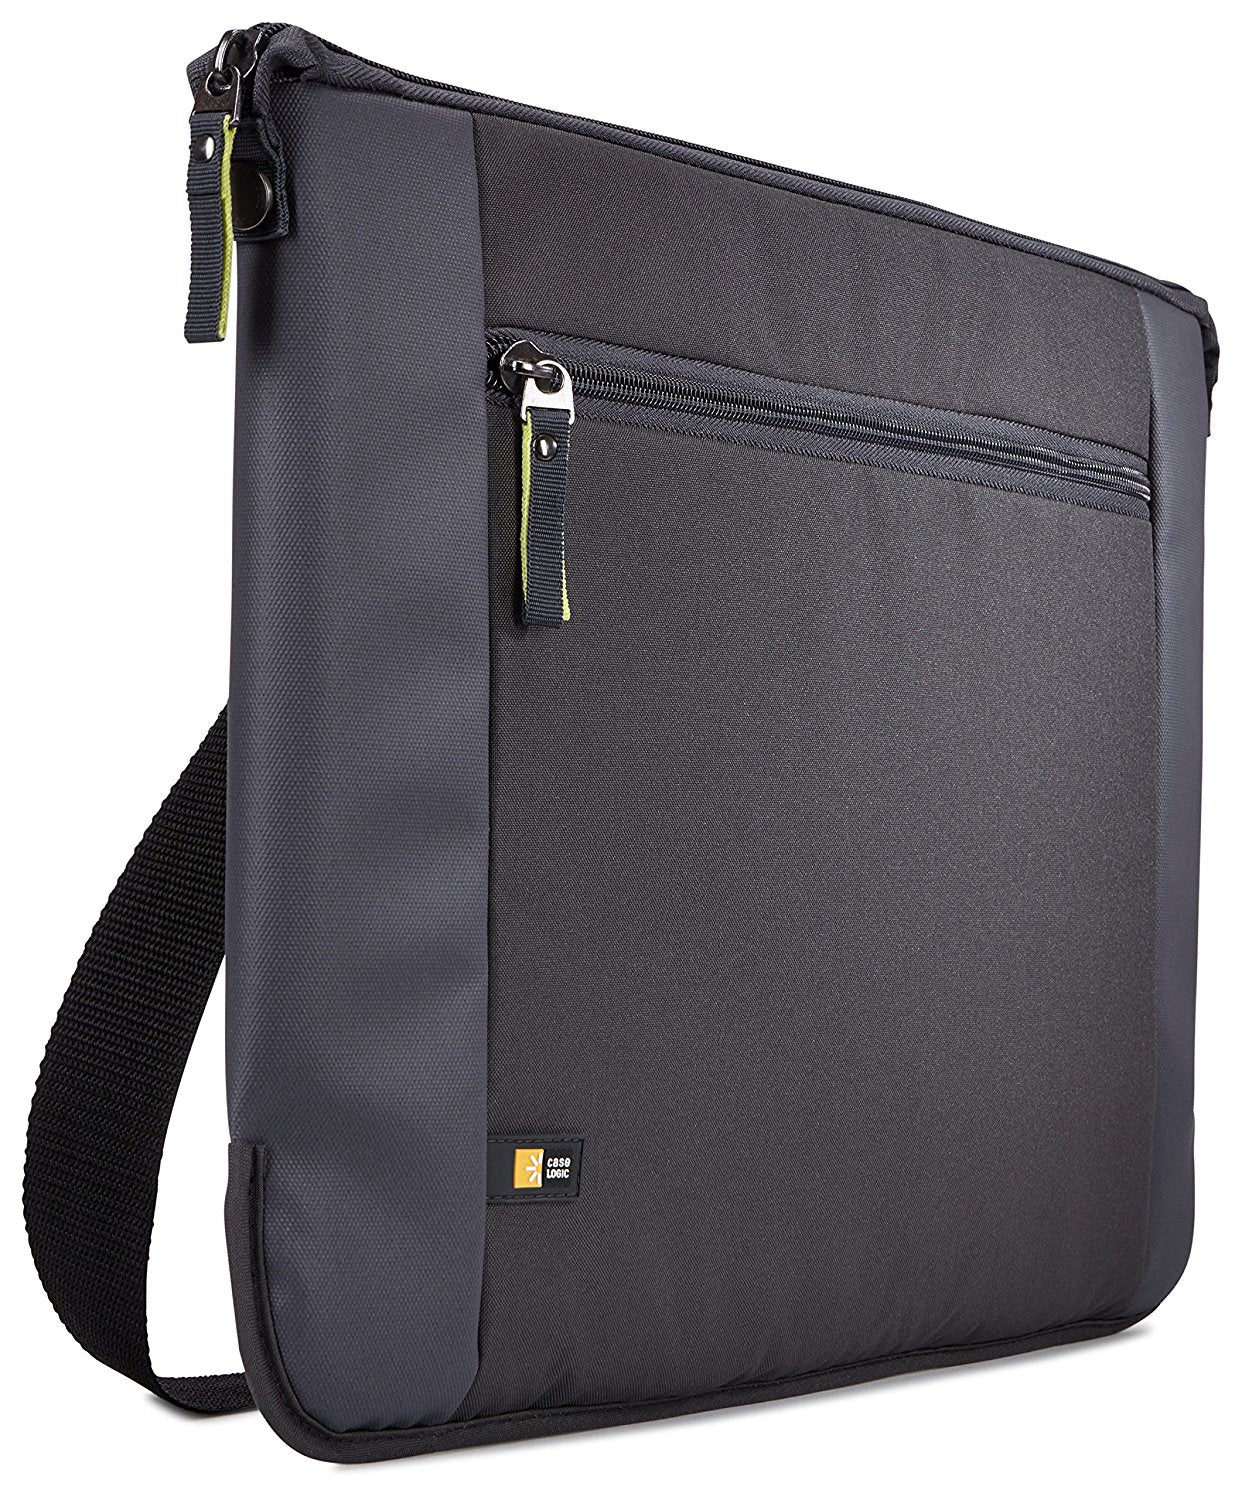 "Case Logic Intrata 15.6"" Laptop Bag INT115 ANT"